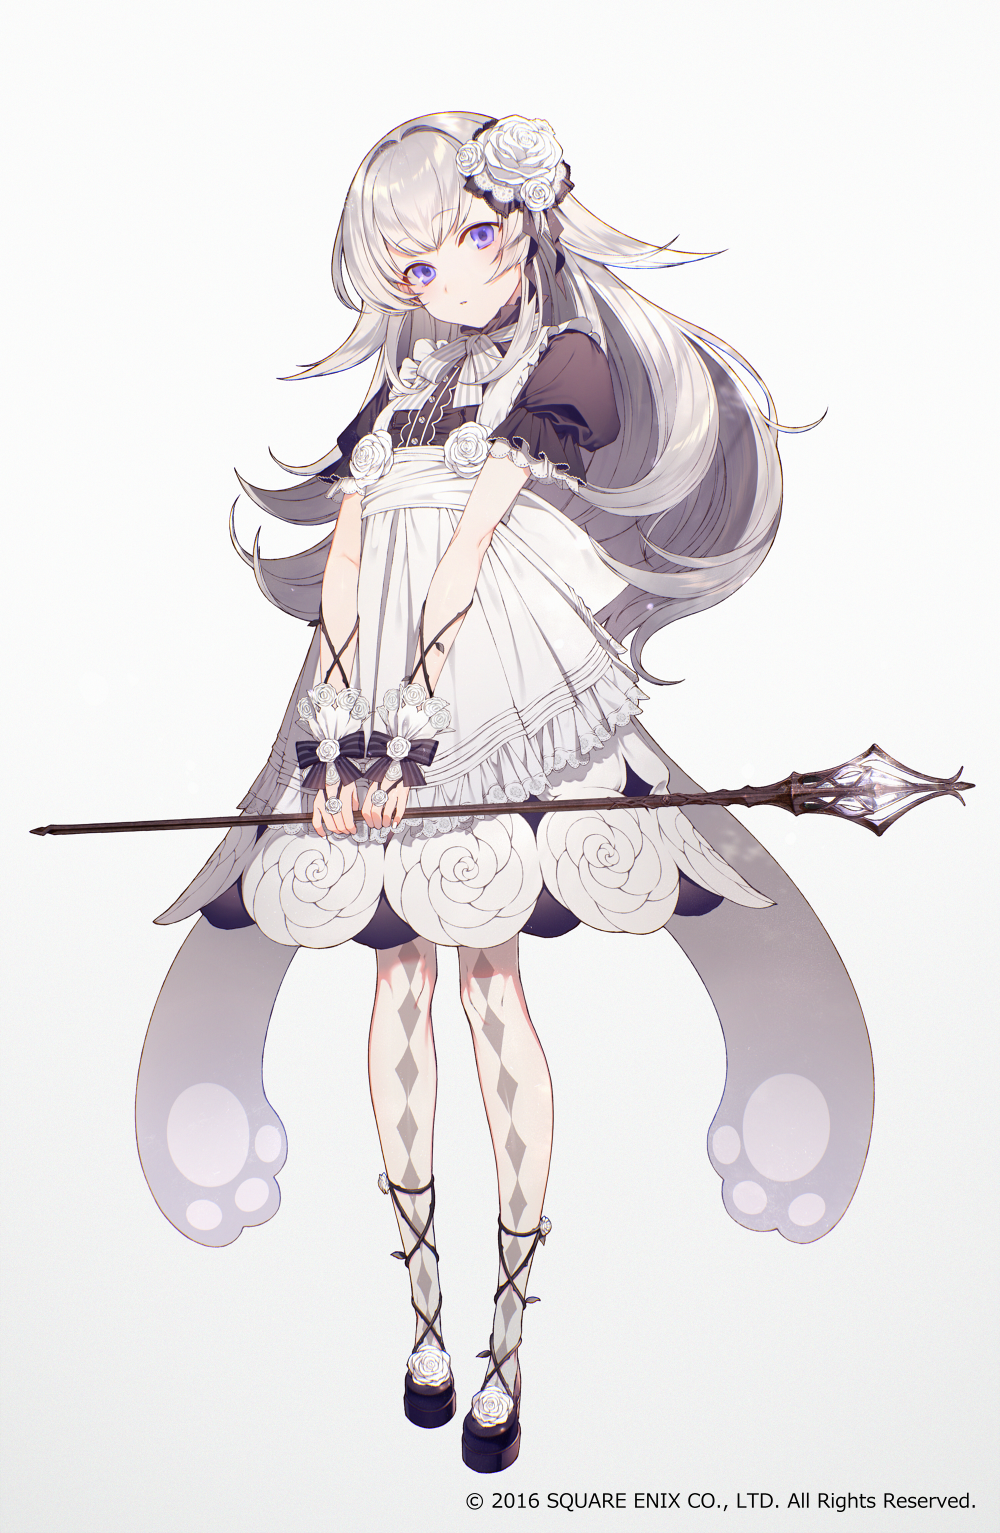 1girl apron argyle argyle_legwear black_shirt black_shoes bow buttons commentary_request dress flower frilled_dress frilled_sleeves frills full_body grey_background grimms_notes hair_intakes hair_ornament highres holding holding_staff long_hair looking_at_viewer nail_polish neck_ribbon official_art pantyhose parted_lips puffy_short_sleeves puffy_sleeves ribbon rose rose_hair_ornament see-through shirosoubi_(grimms_notes) shirotaka_(5choume) shirt shoes short_sleeves sidelocks simple_background solo staff standing striped striped_bow thorns violet_eyes white_apron white_dress white_hair white_nails white_rose wrist_cuffs